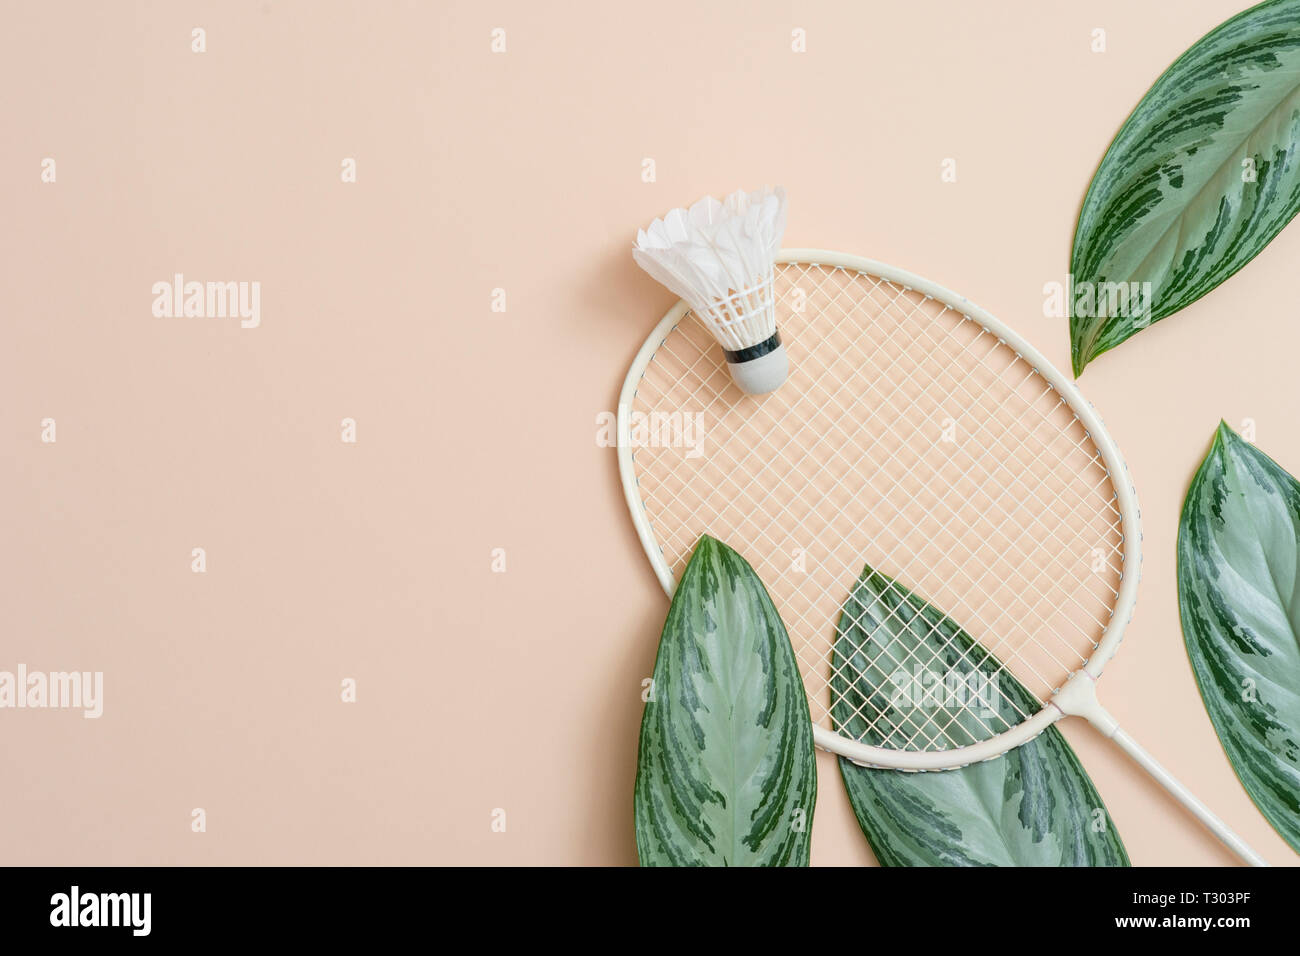 Badminton Beach Set And Tropical Leaves Sports Header On A Cream Background With Copy Space Summer Vacation Flat Lay Stock Photo Alamy Are you looking for tropical leaves design images templates psd or png vectors files? alamy